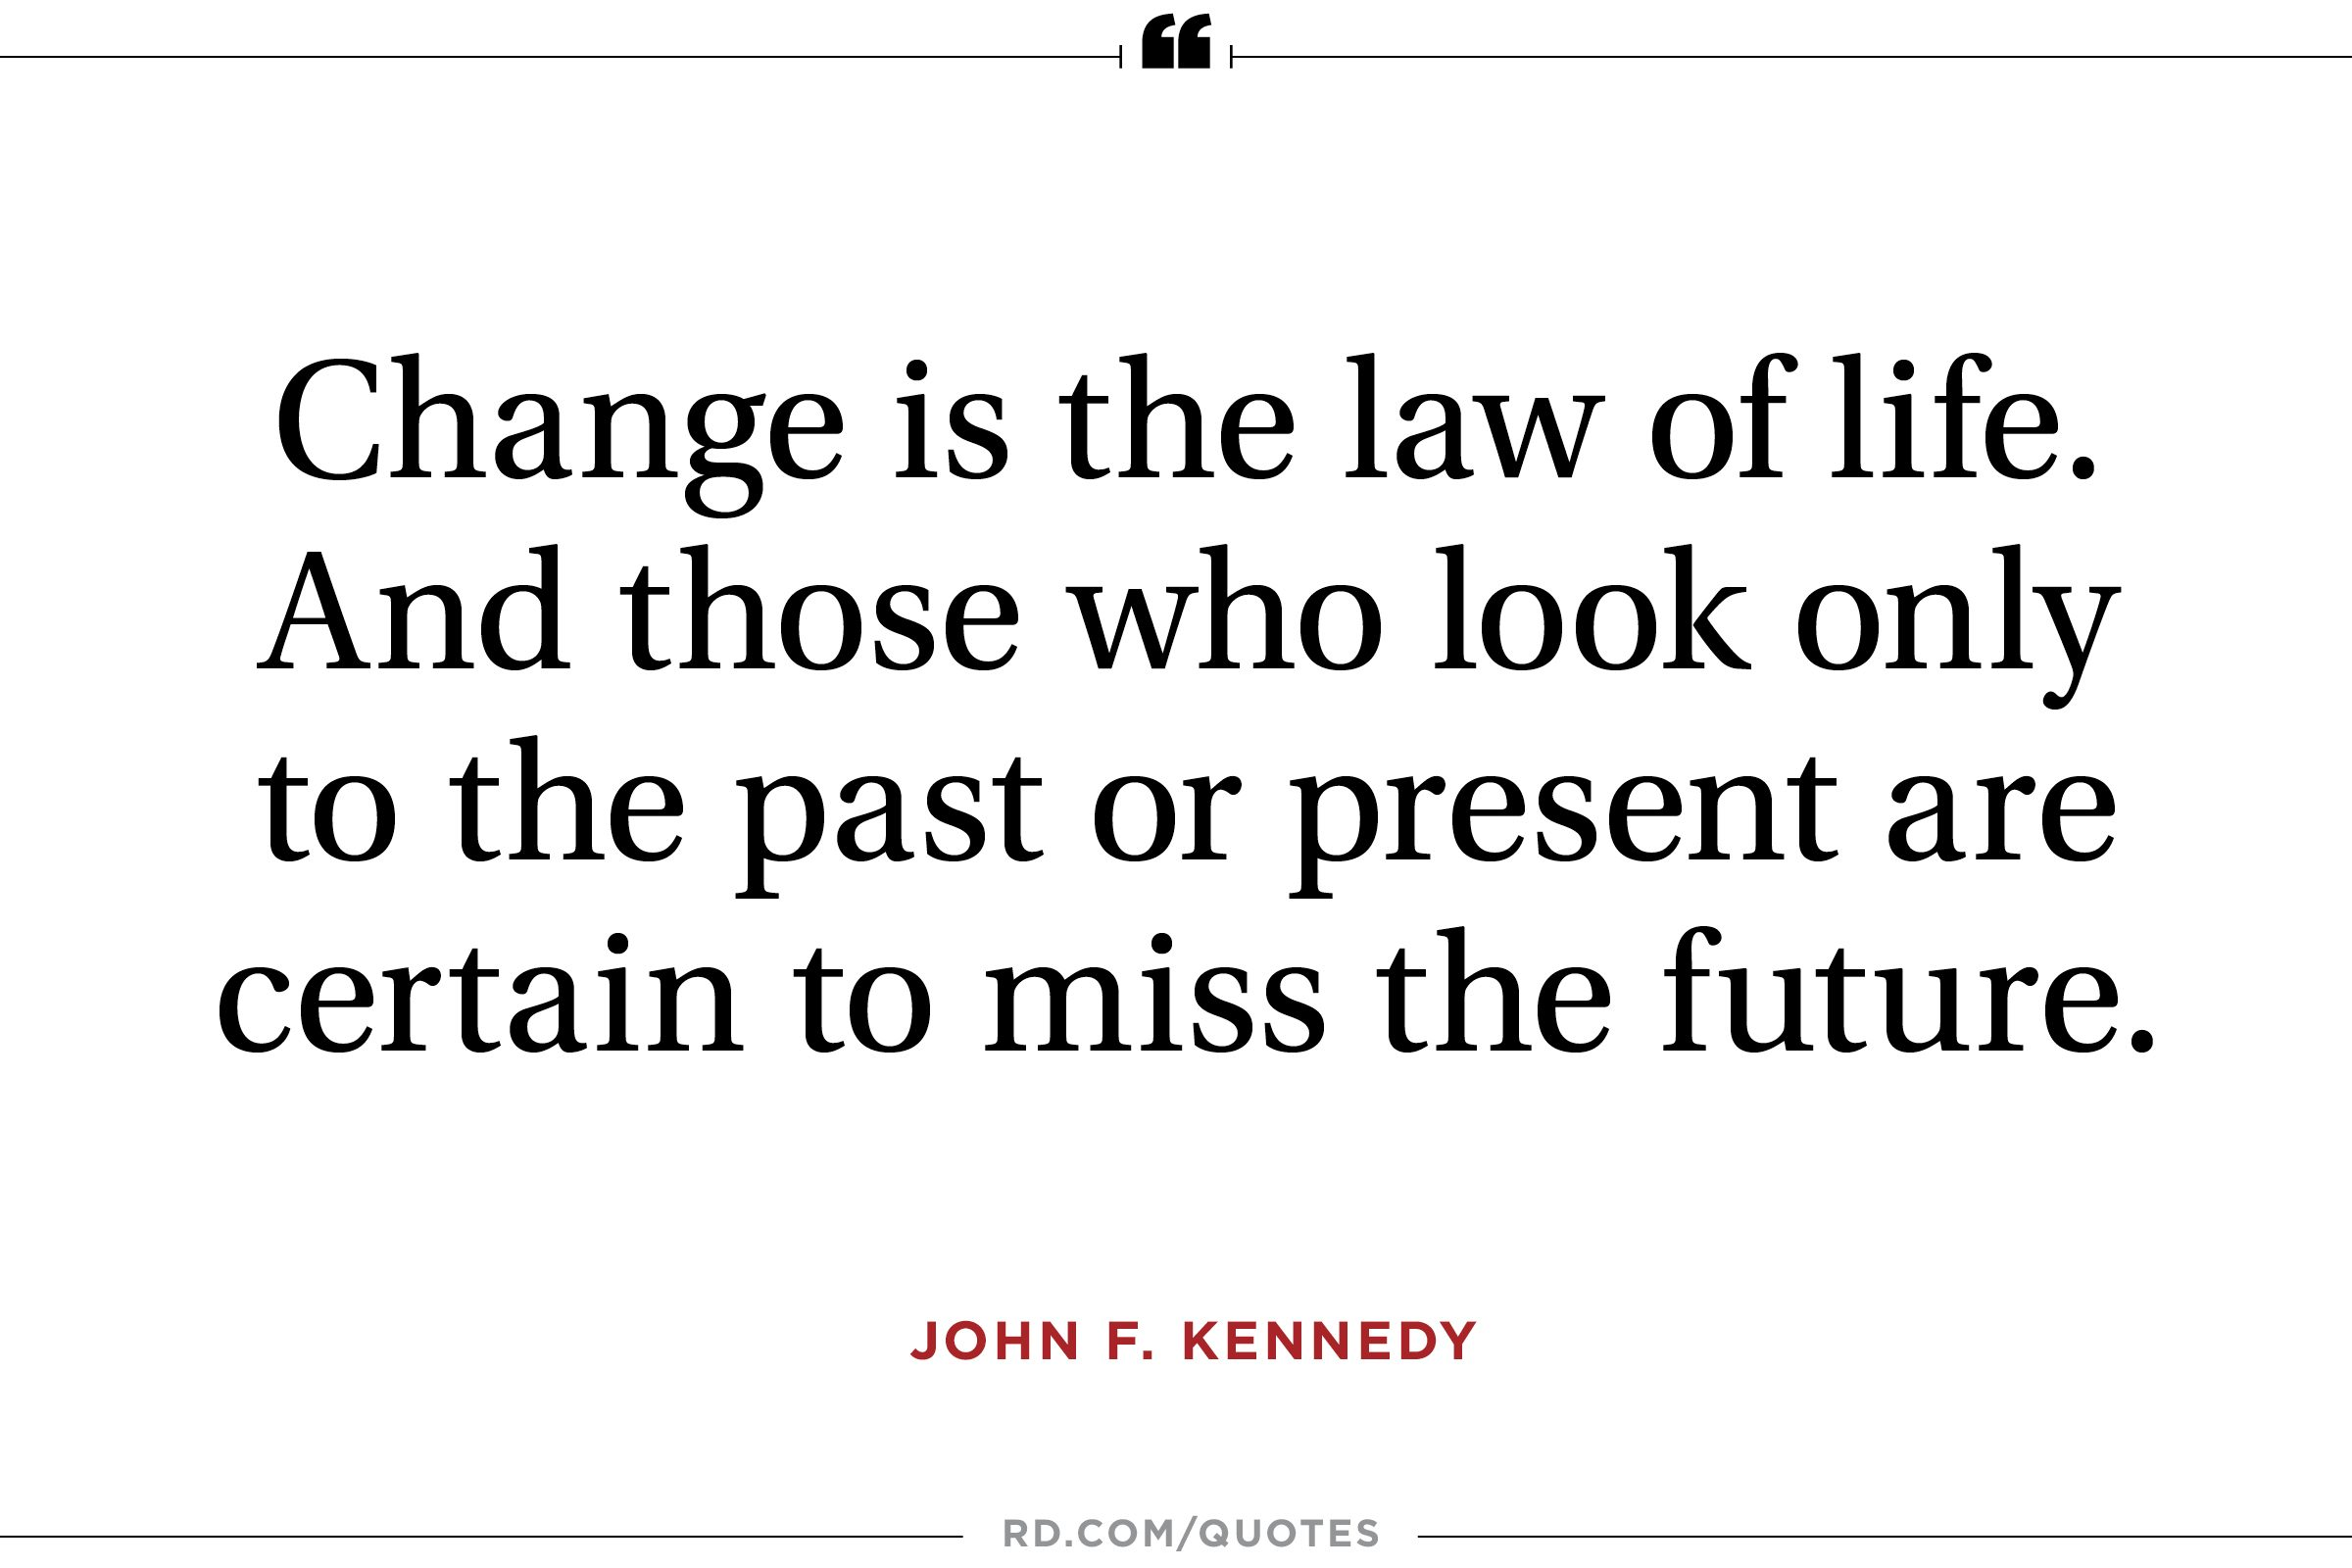 JFK on change